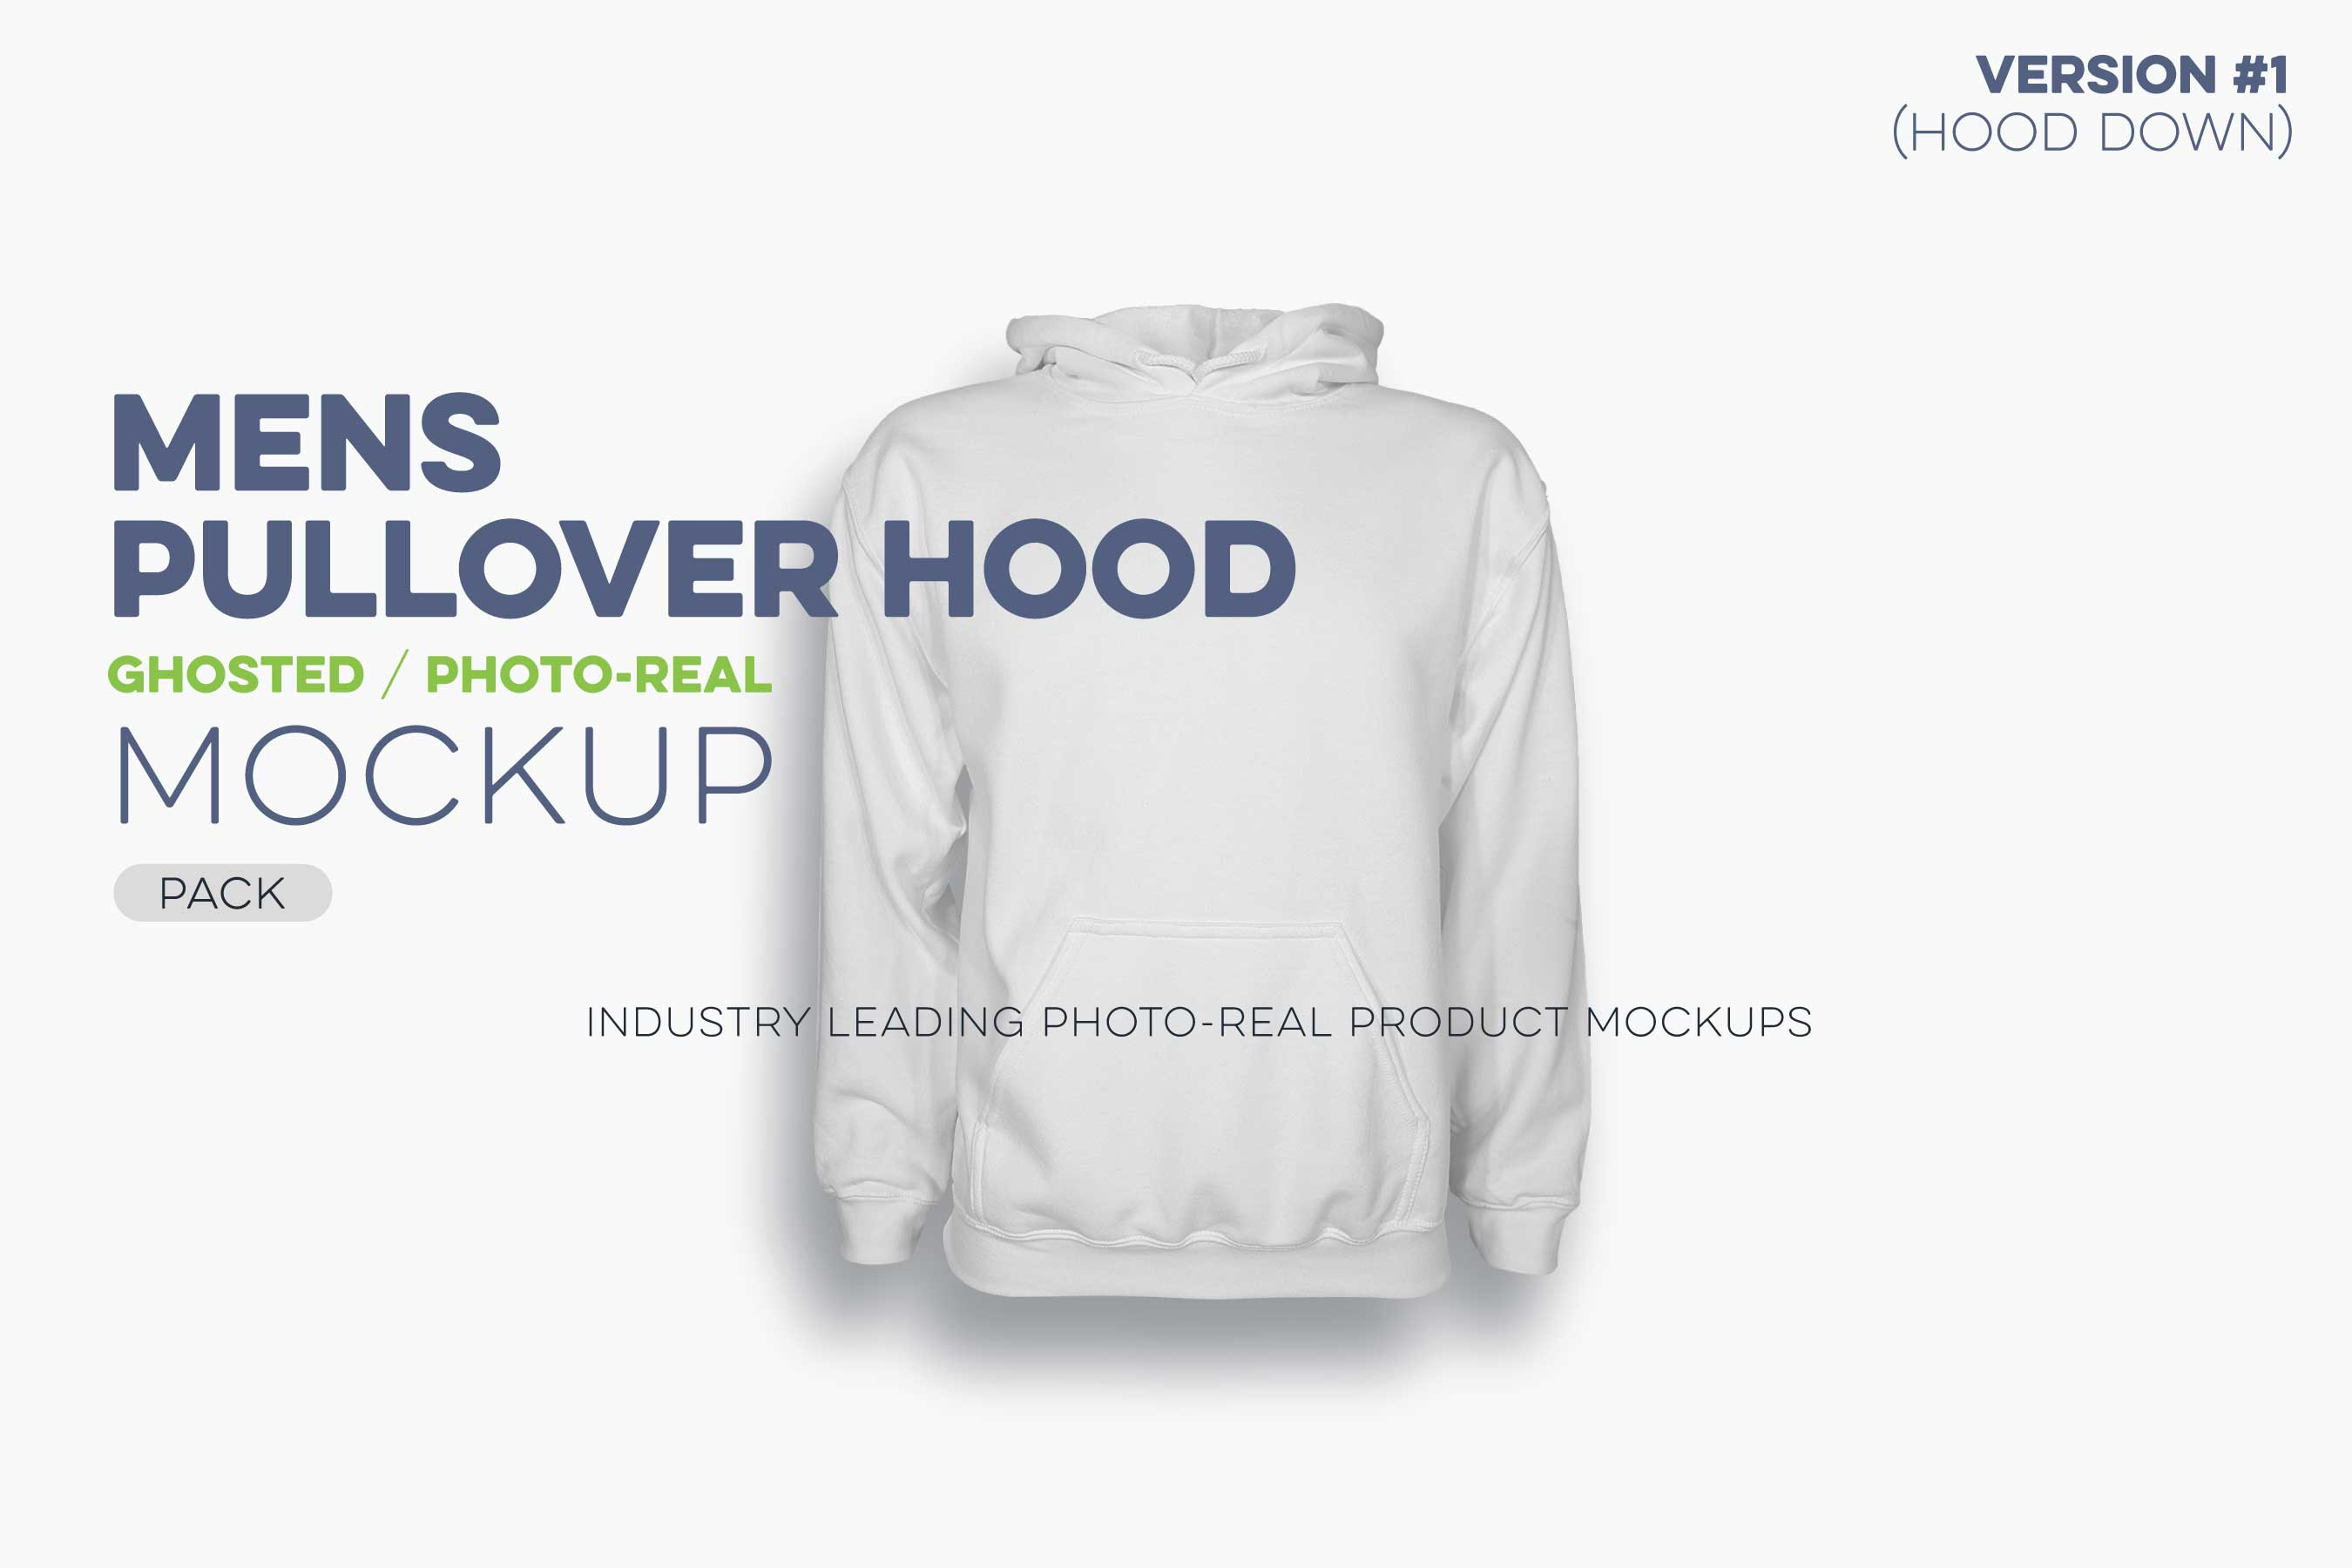 mens ghosted pullover hoodie mockup HD template N